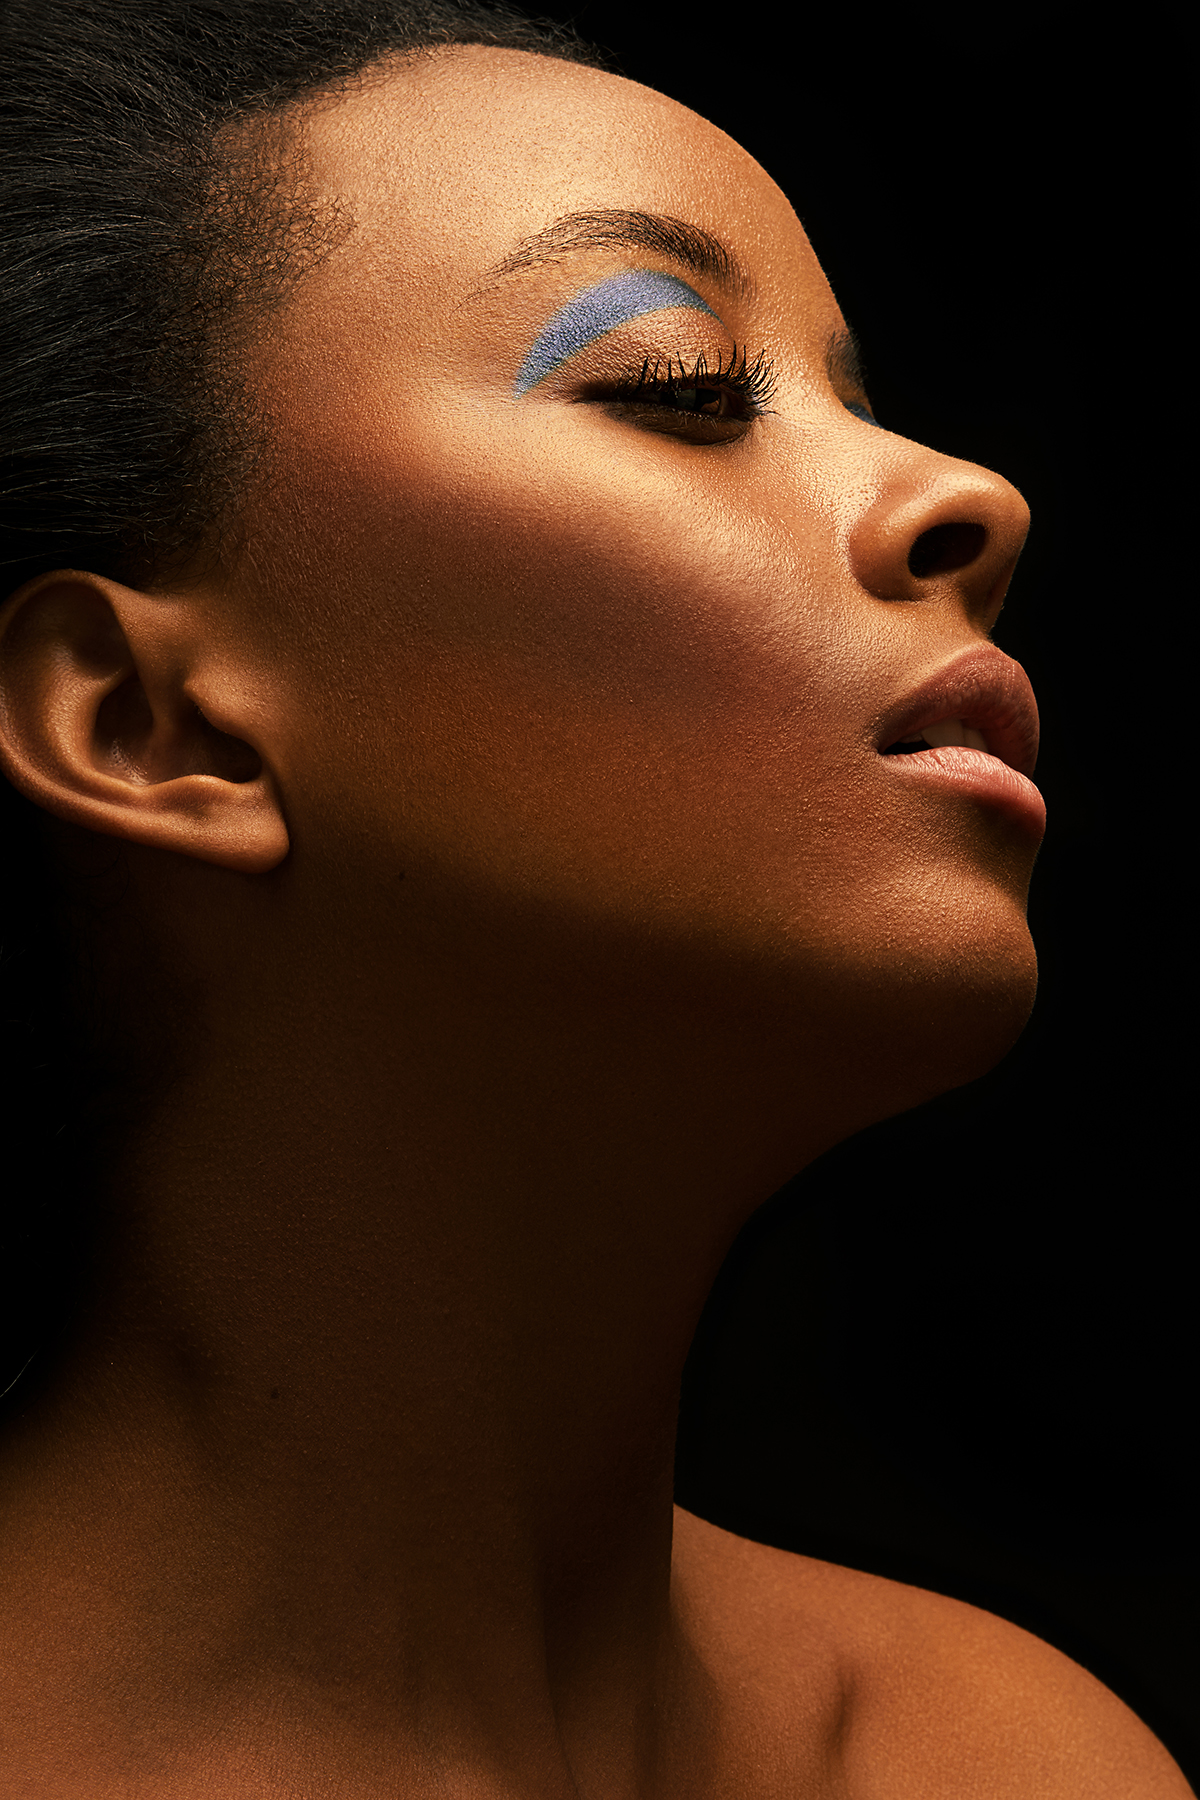 03. Michelene Auguste by Kyle Galvin